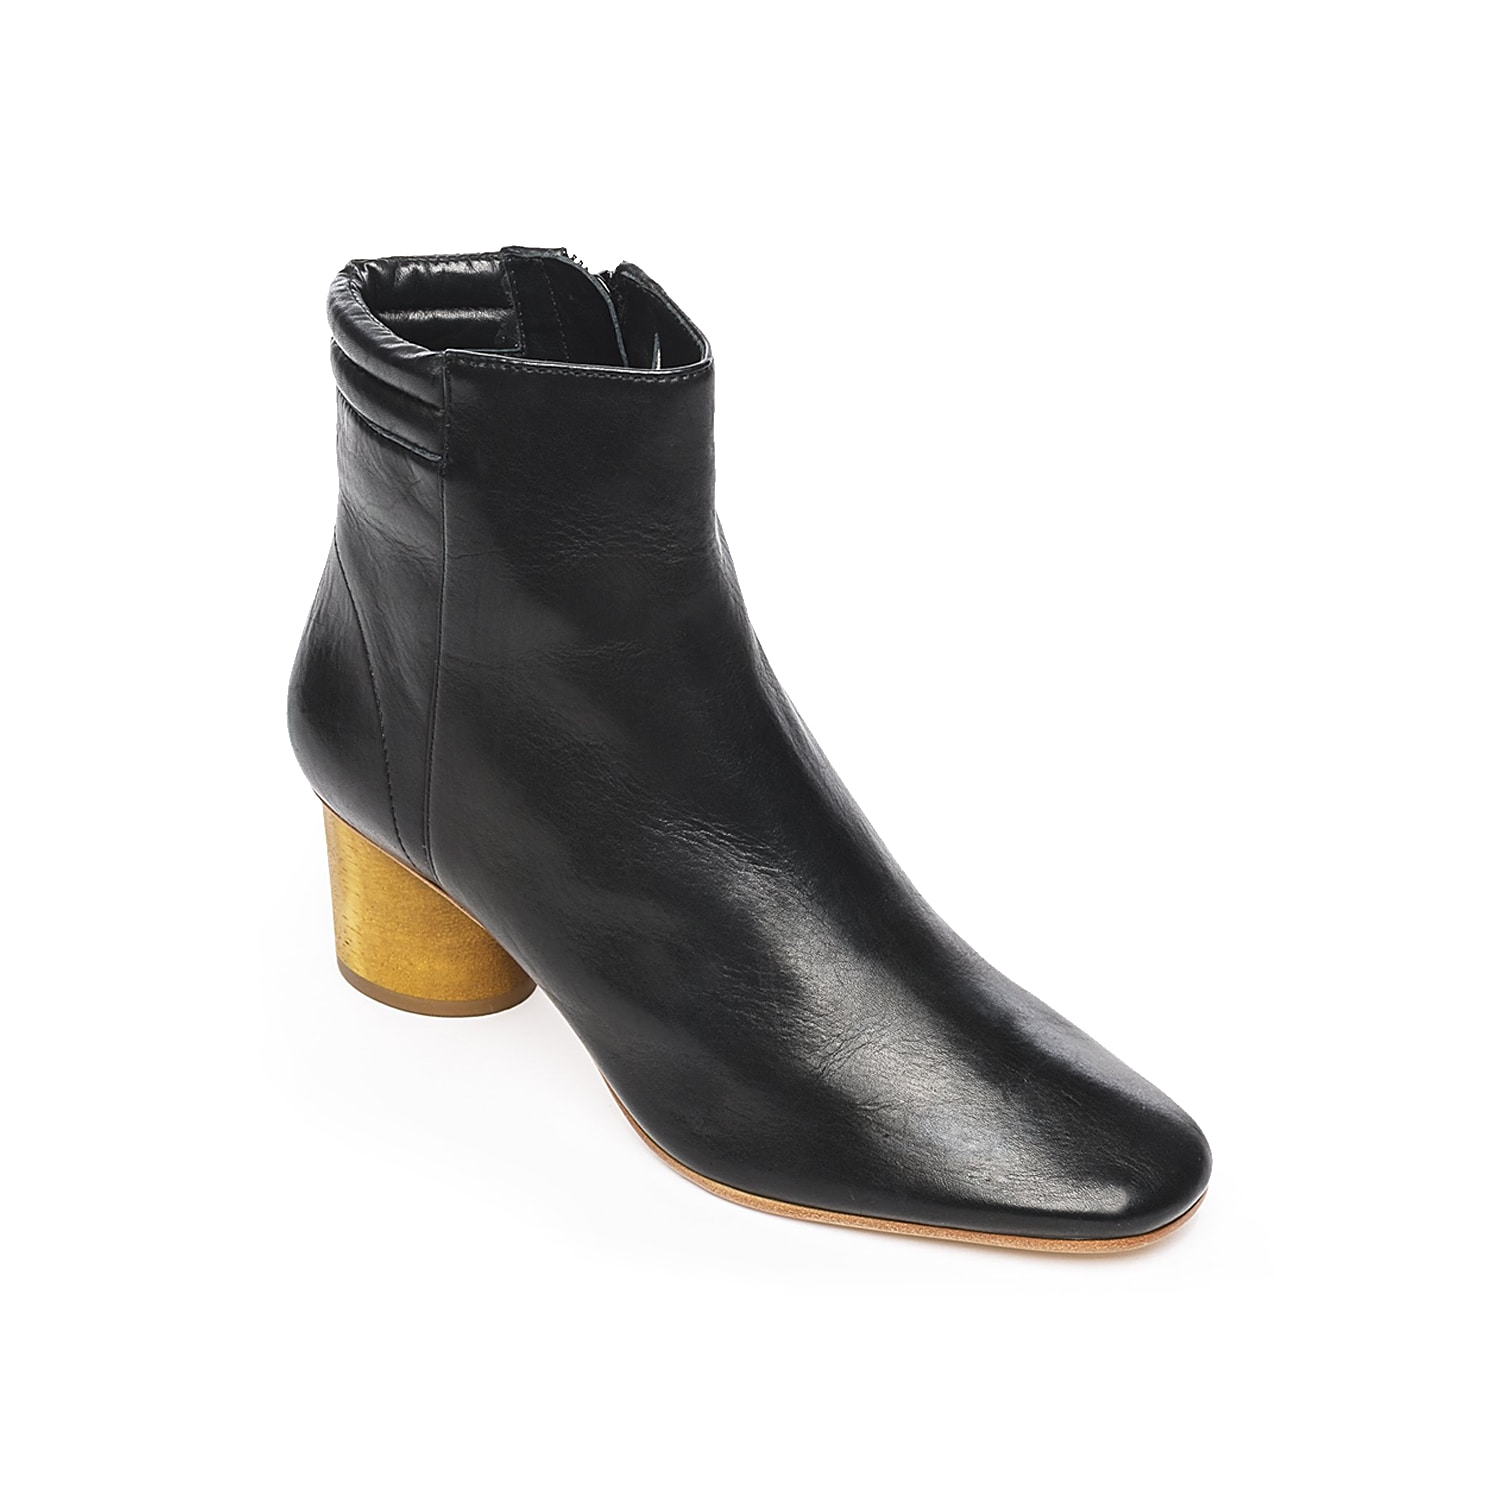 The Izabella bootie from Bernardo will become a new favorite in your cold weather wardrobe. Featuring a cylindrical wood block heel and quilted collar, this ankle boot will pair perfectly with your favorite trench coat for trendy style.